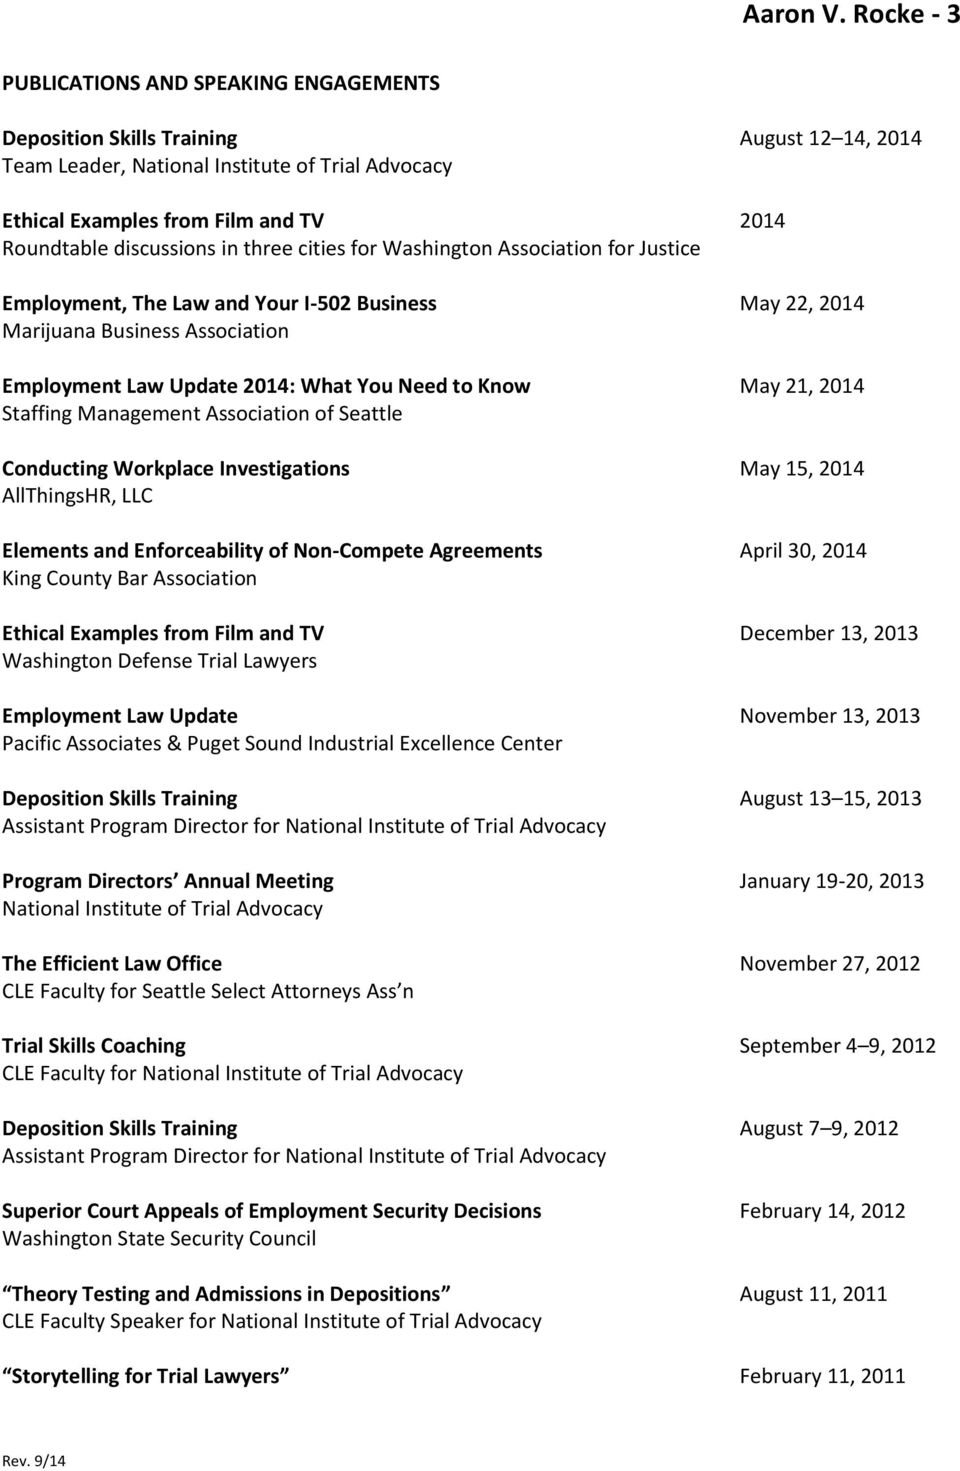 discussions in three cities for Washington Association for Justice Employment, The Law and Your I-502 Business May 22, 2014 Marijuana Business Association Employment Law Update 2014: What You Need to